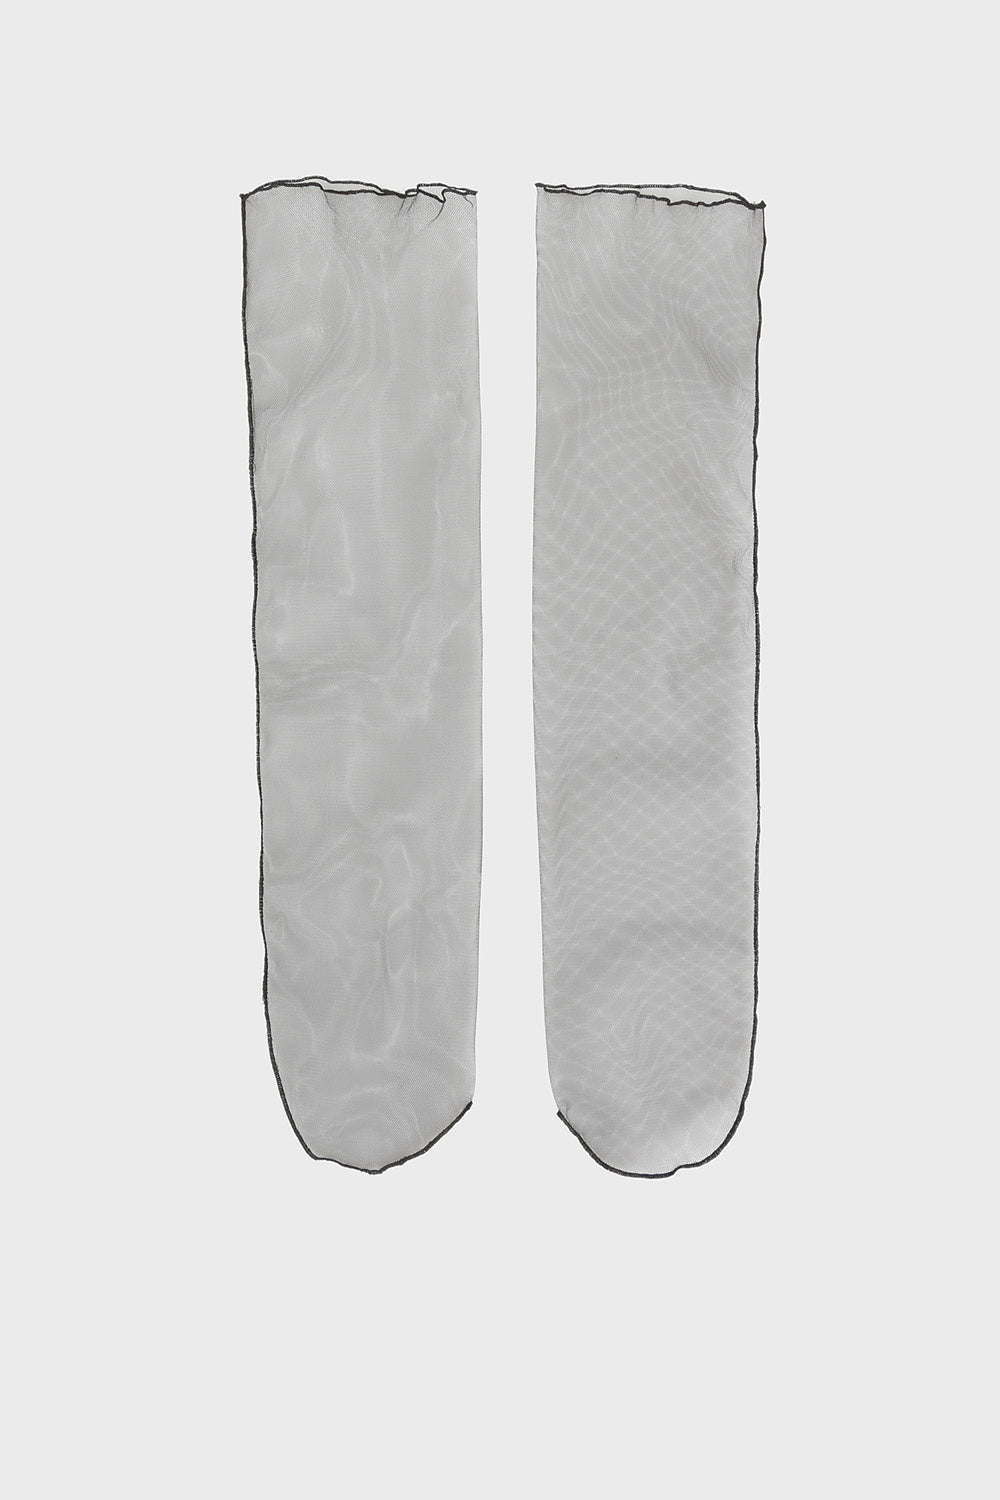 Black transparent socks